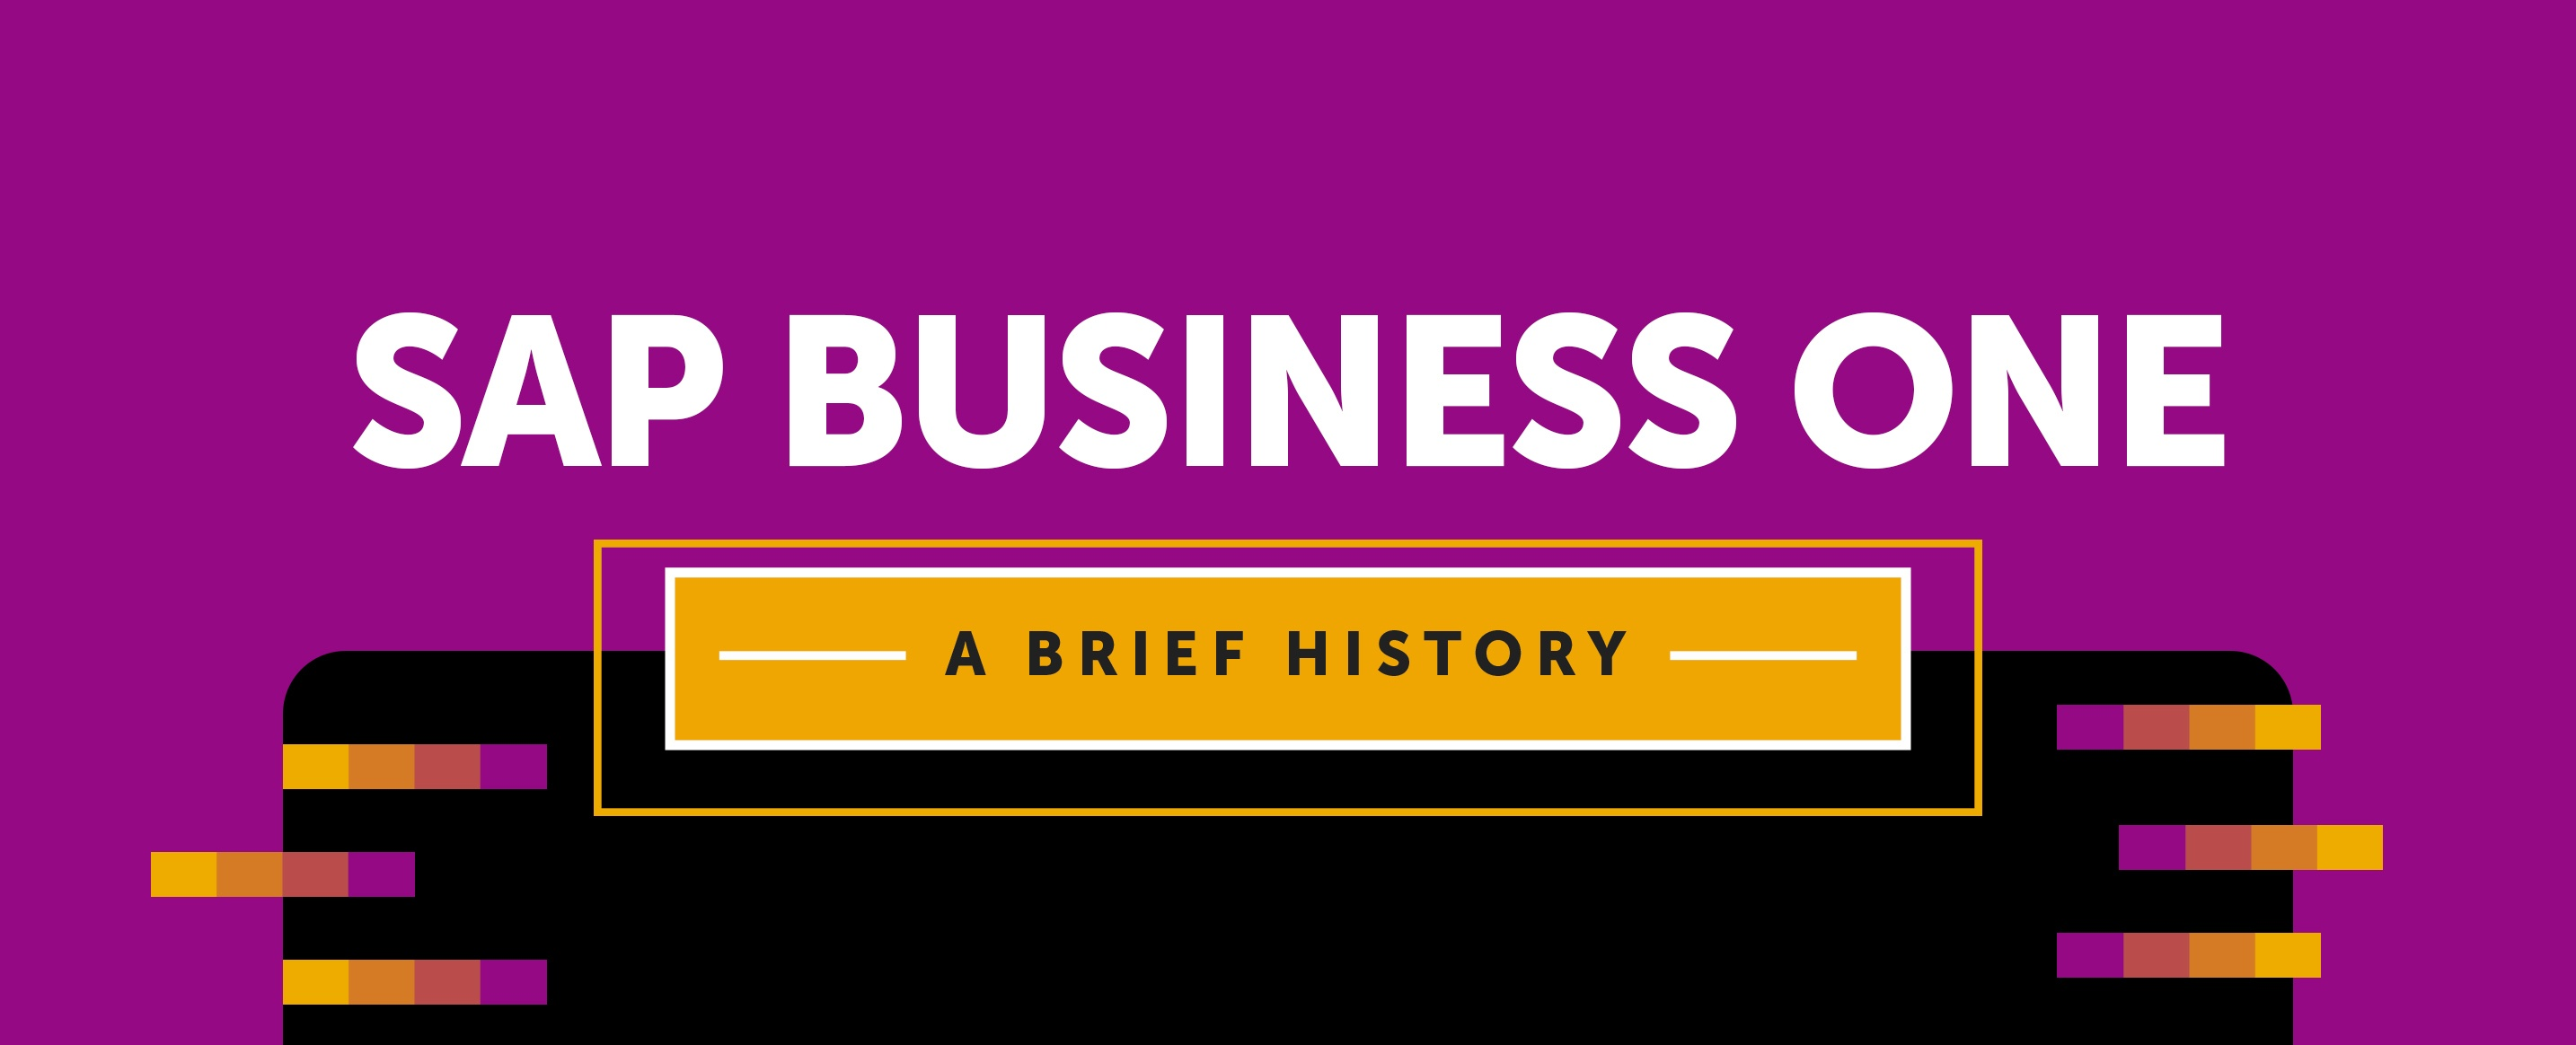 sap-business-one-history